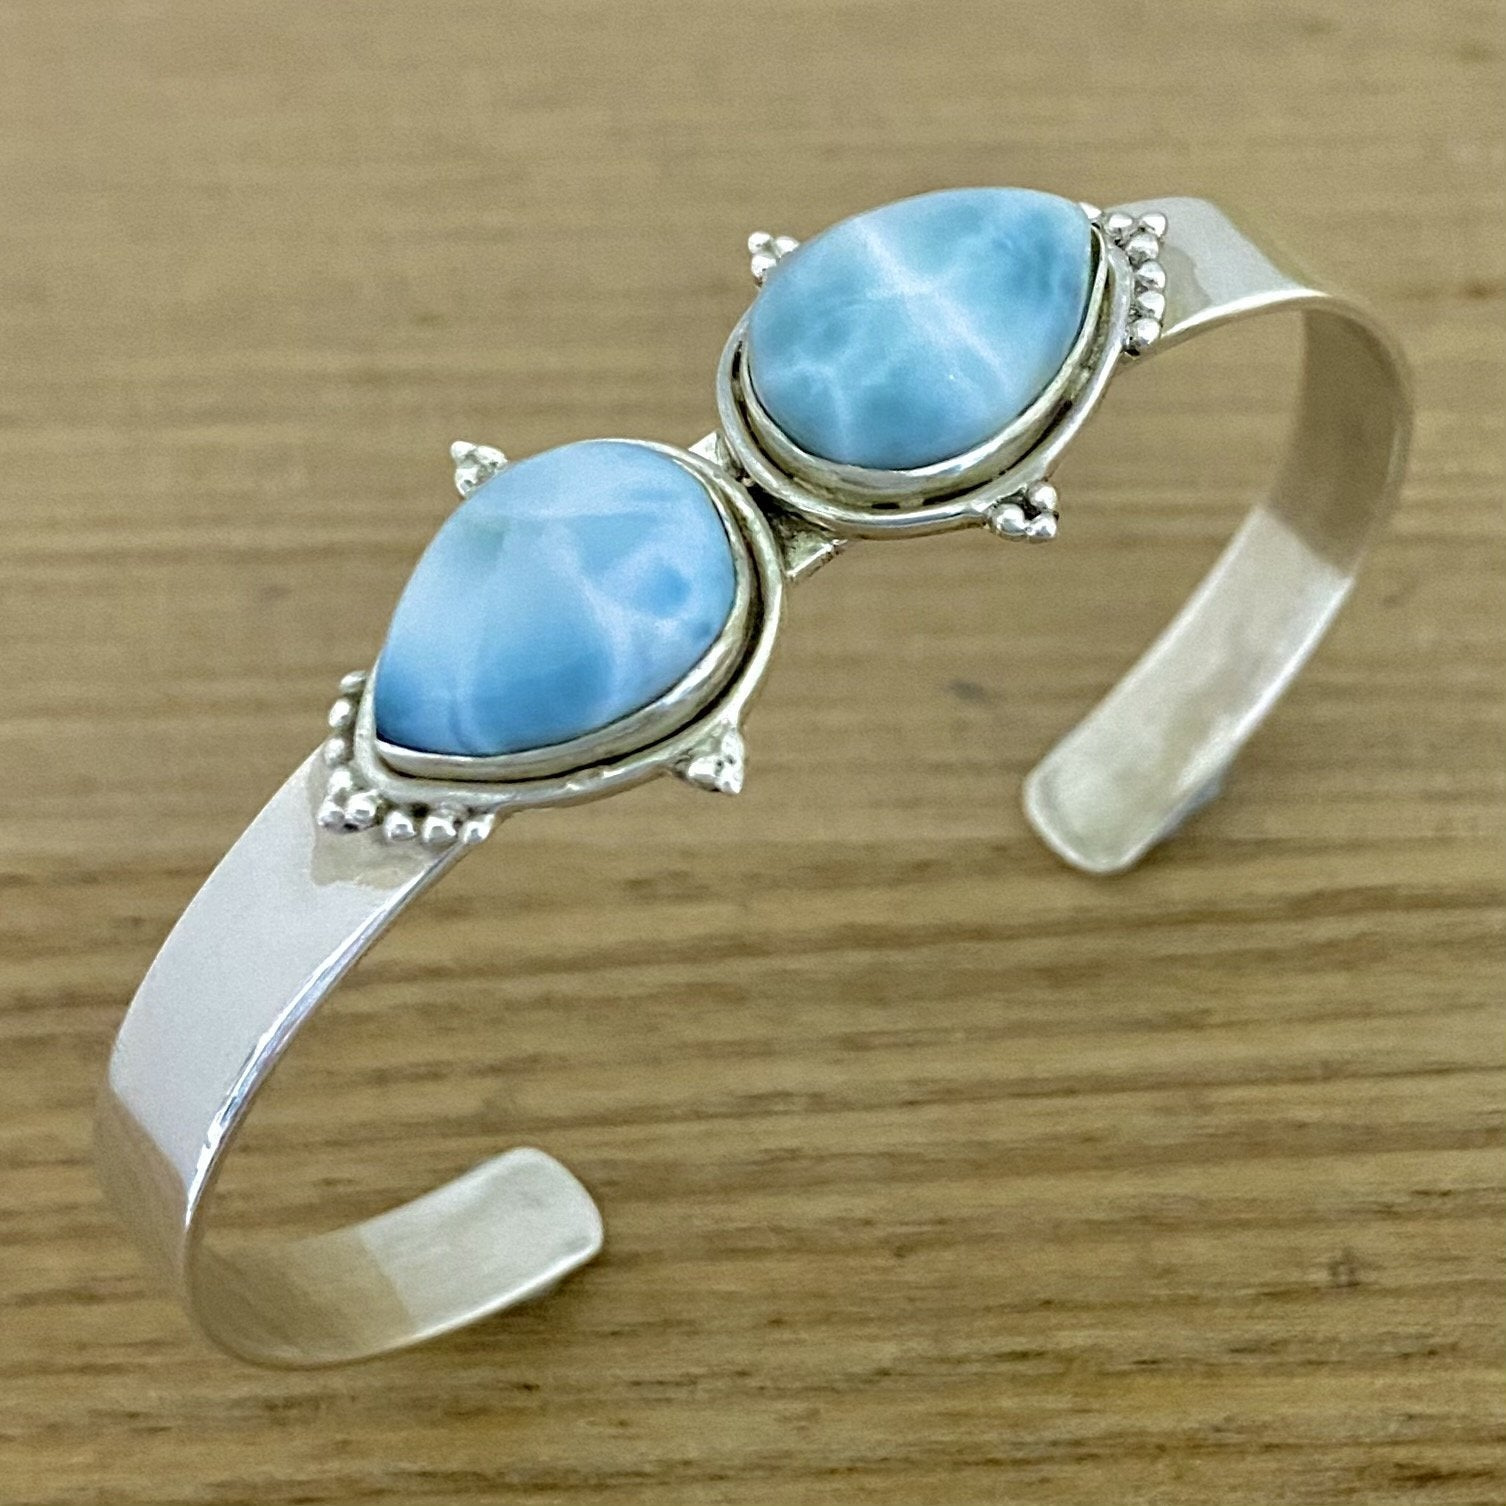 Laihas Zahli Two Tear Larimar Bangle - Laihas Bohemian Dreaming